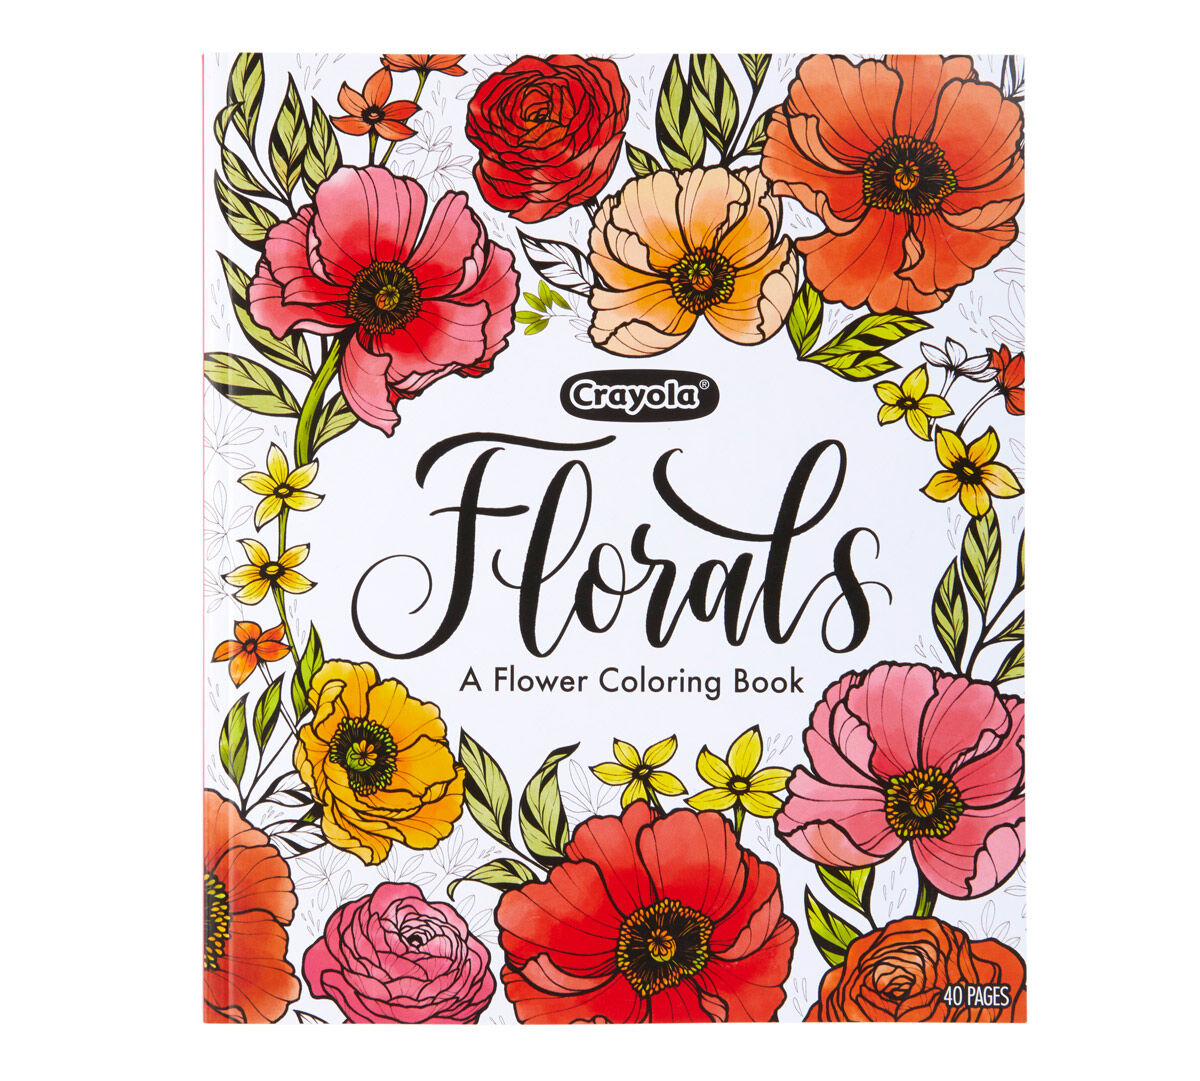 Flower Coloring Book, Floral Coloring Pages Crayola.com Crayola